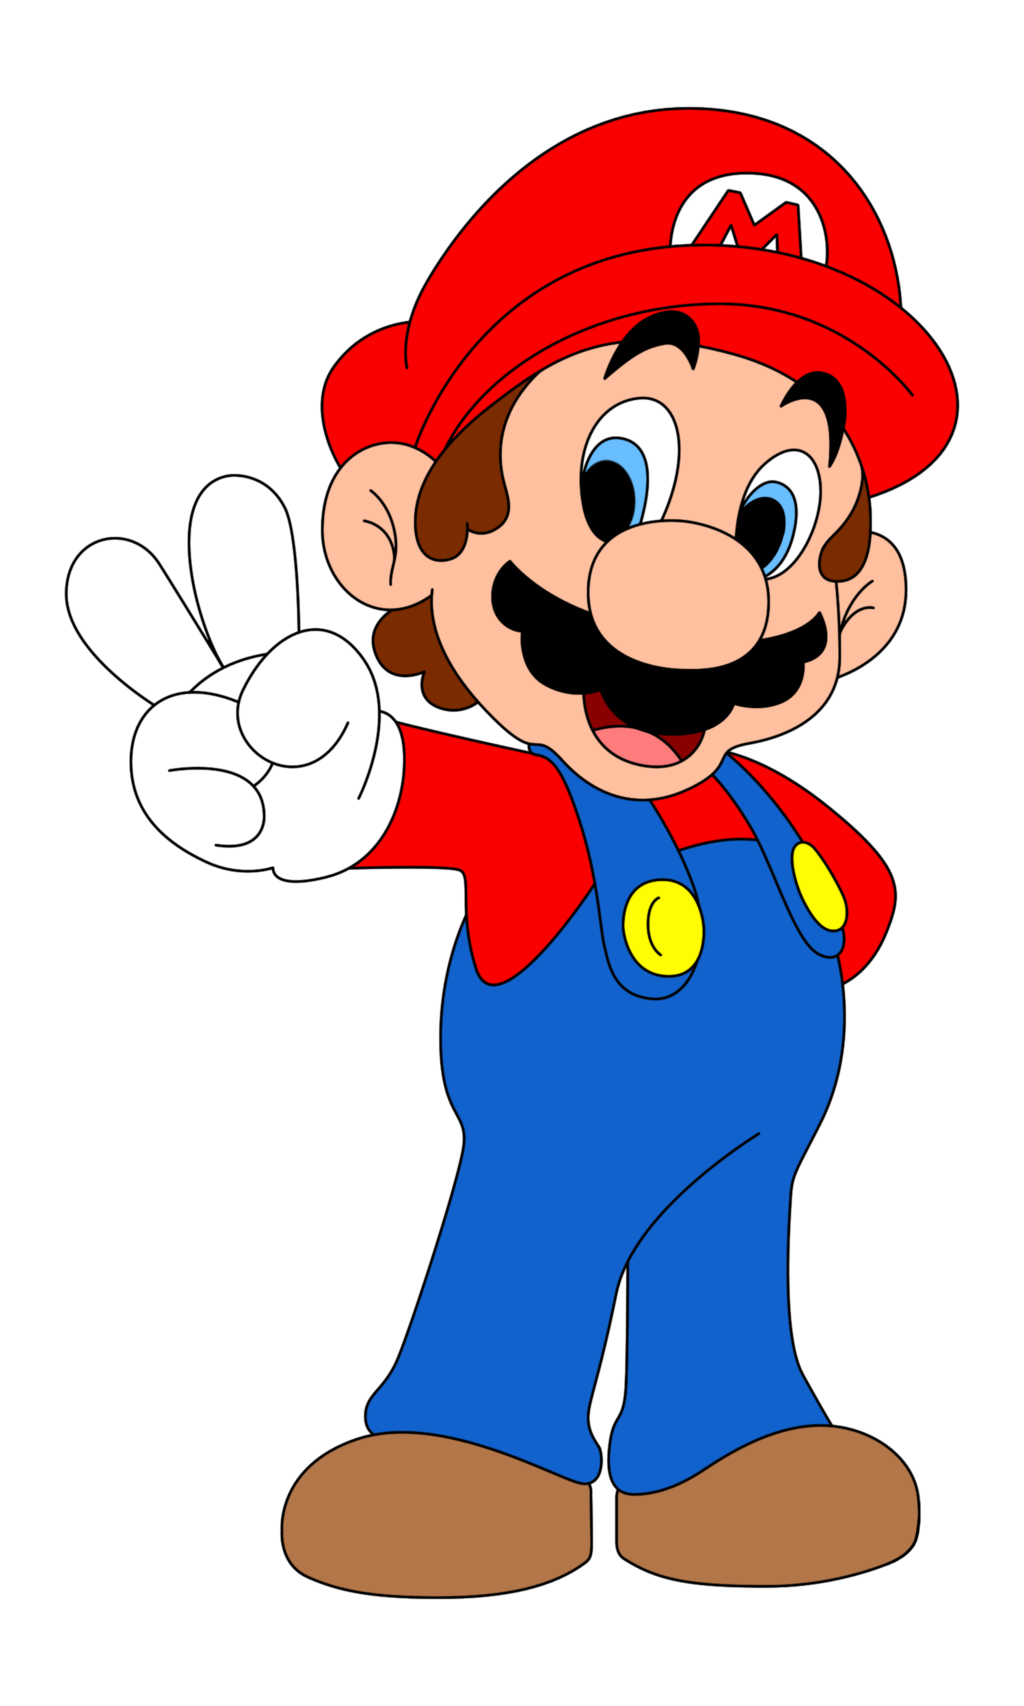 Moustache clipart super mario. Image result for pinterest